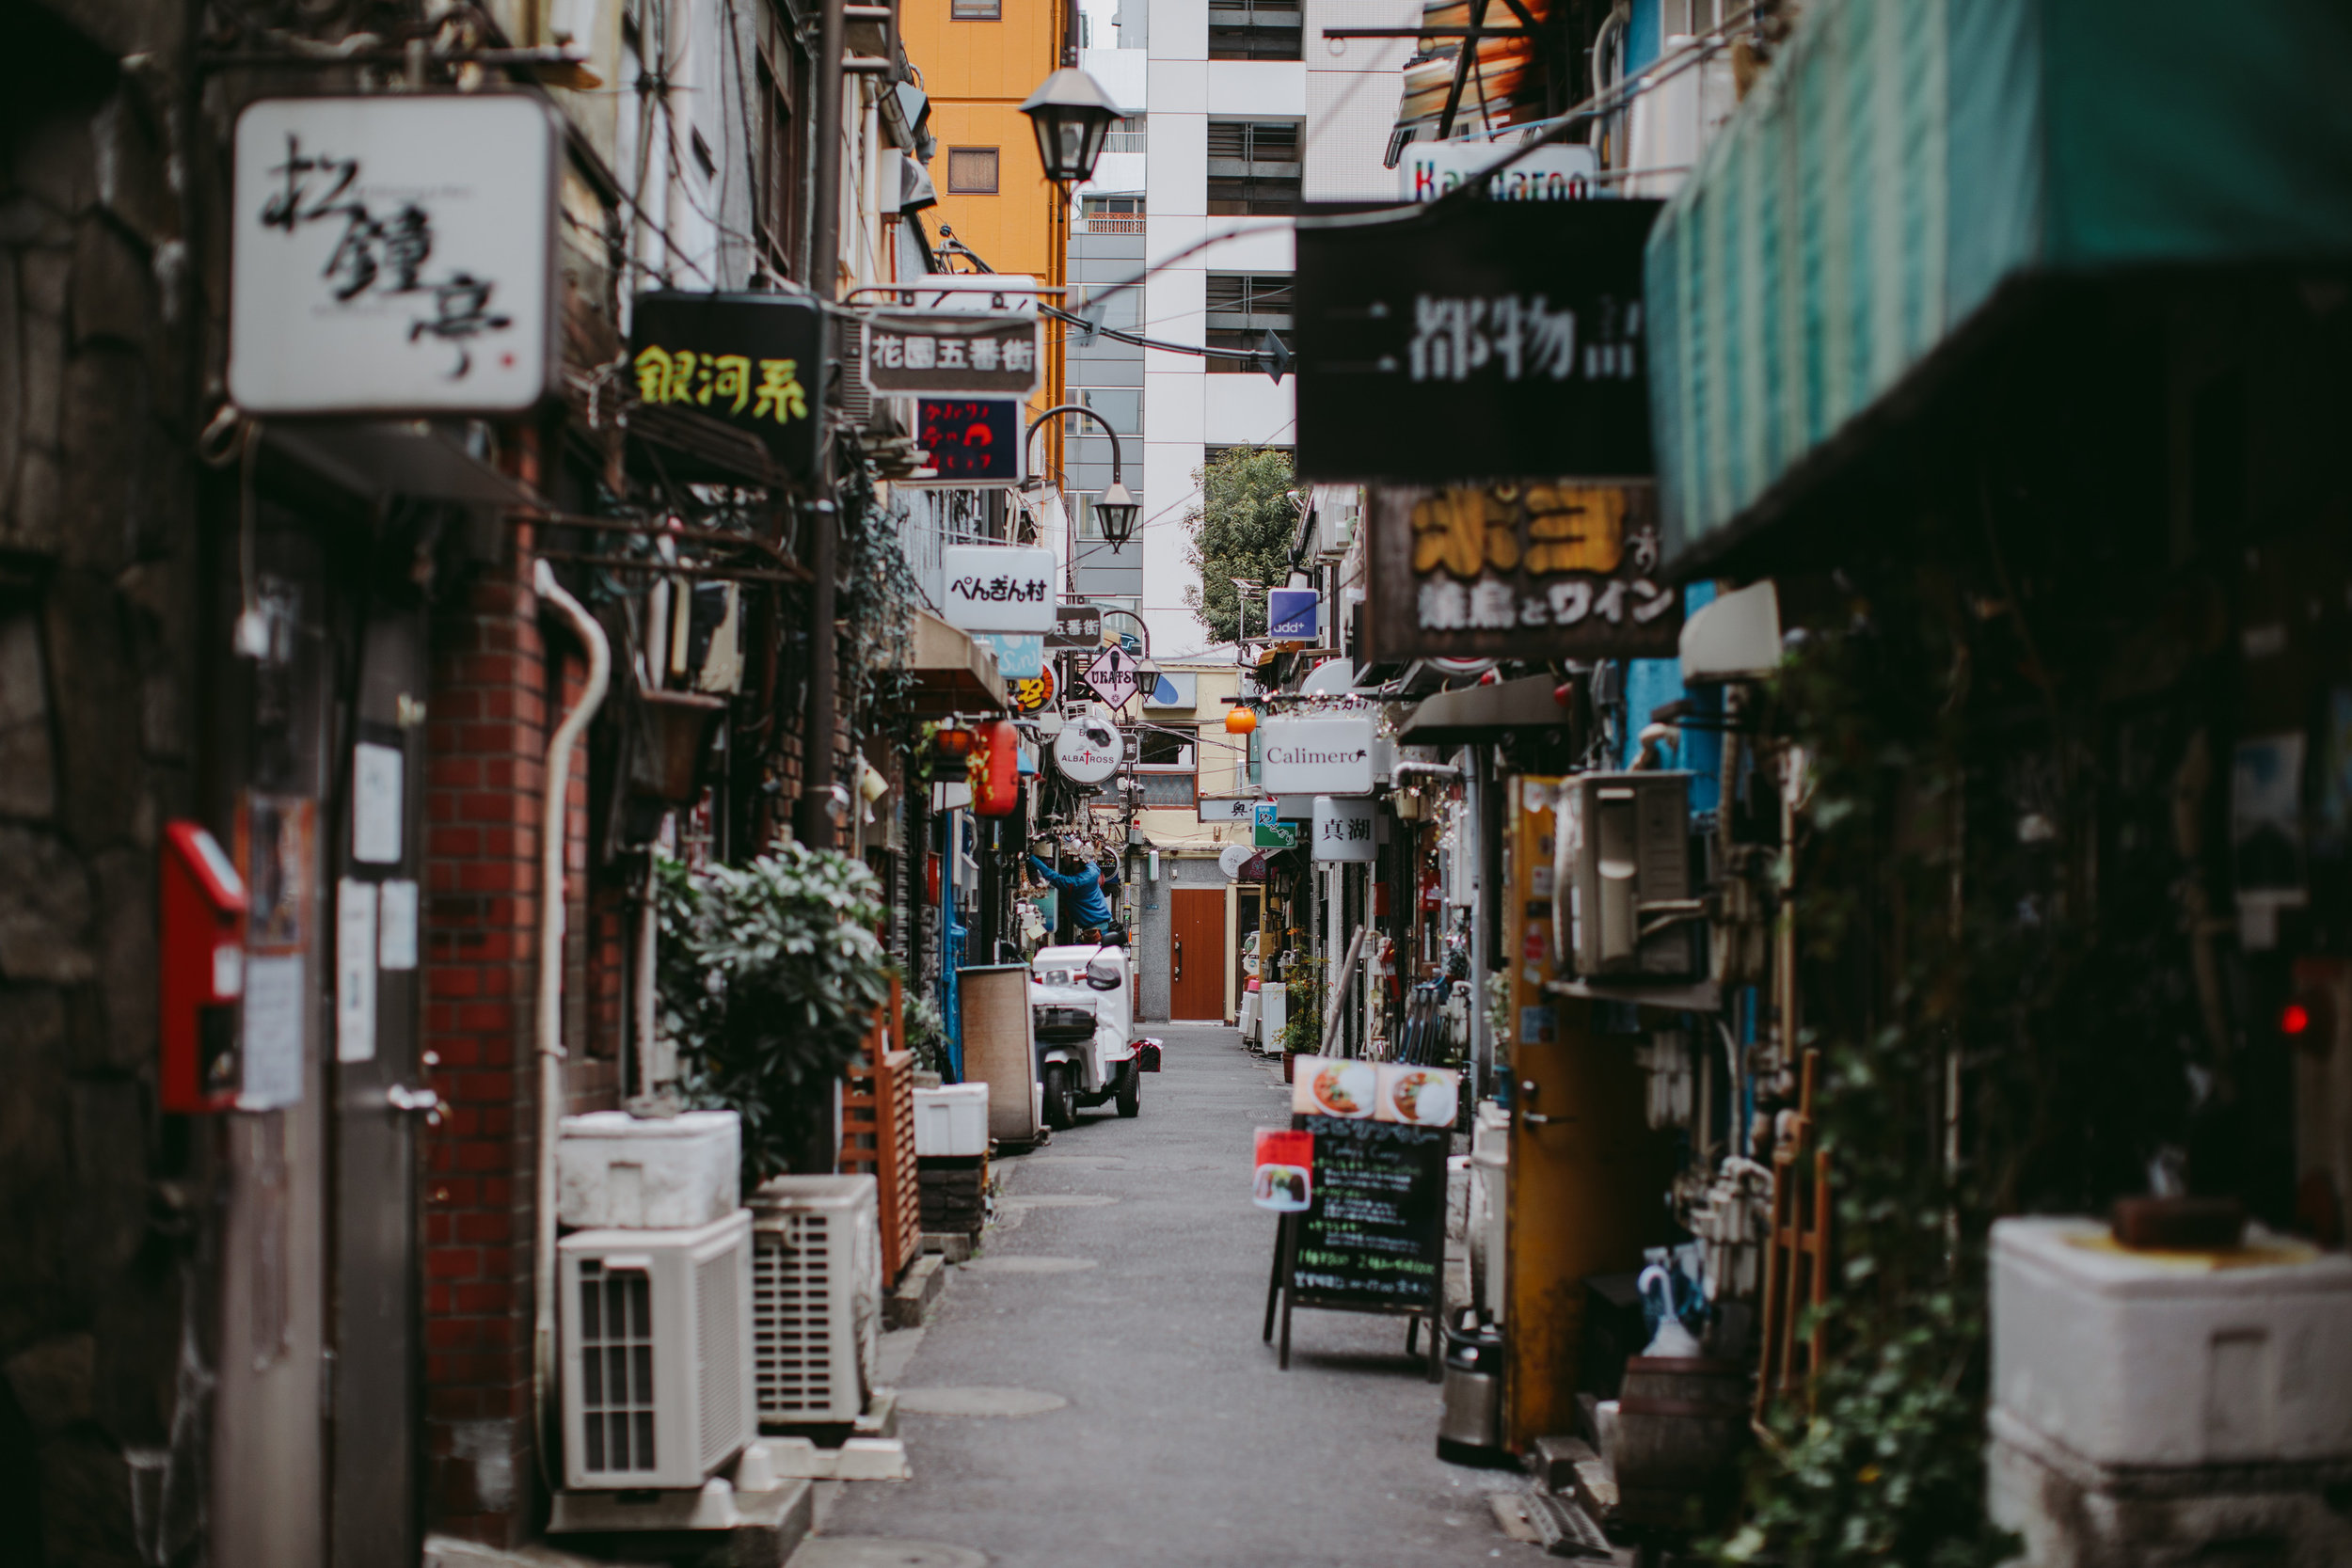 MikeSeehagel-commercial-lifestyle-travel-photography-Japan-02.jpg